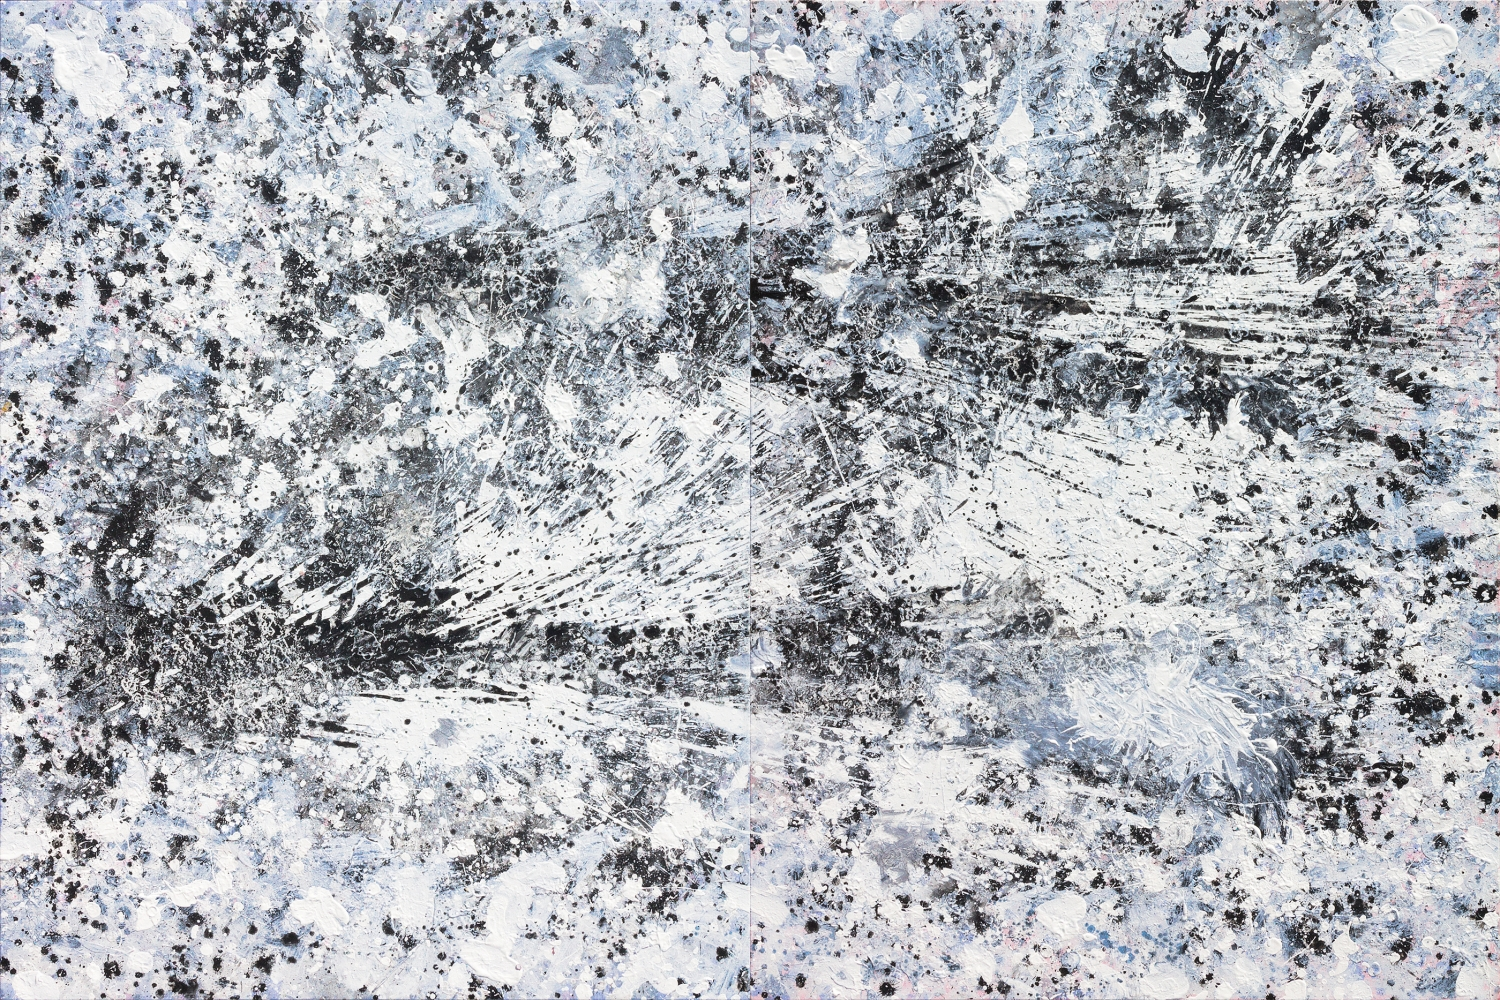 J. Steven Manolis, Black & White - Hurricane Series, 2015.07, acrylic on canvas, 48 x 72 inches, Large Black and White Wall Art, Abstract expressionism art for sale at Manolis Projects Art Gallery, Miami, Fl